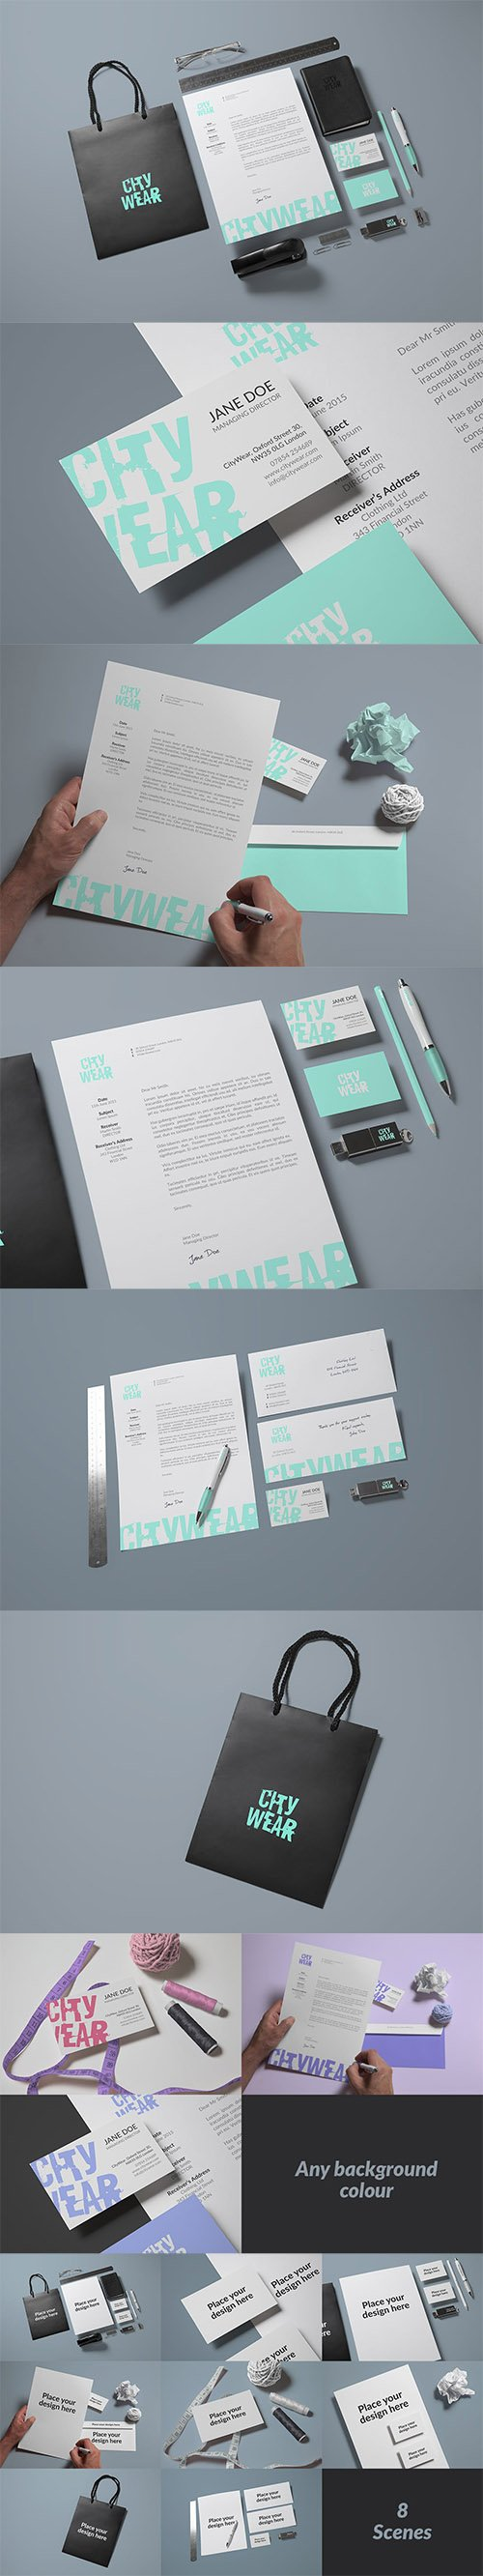 PSD Corporate Branding / Identity Mock-up